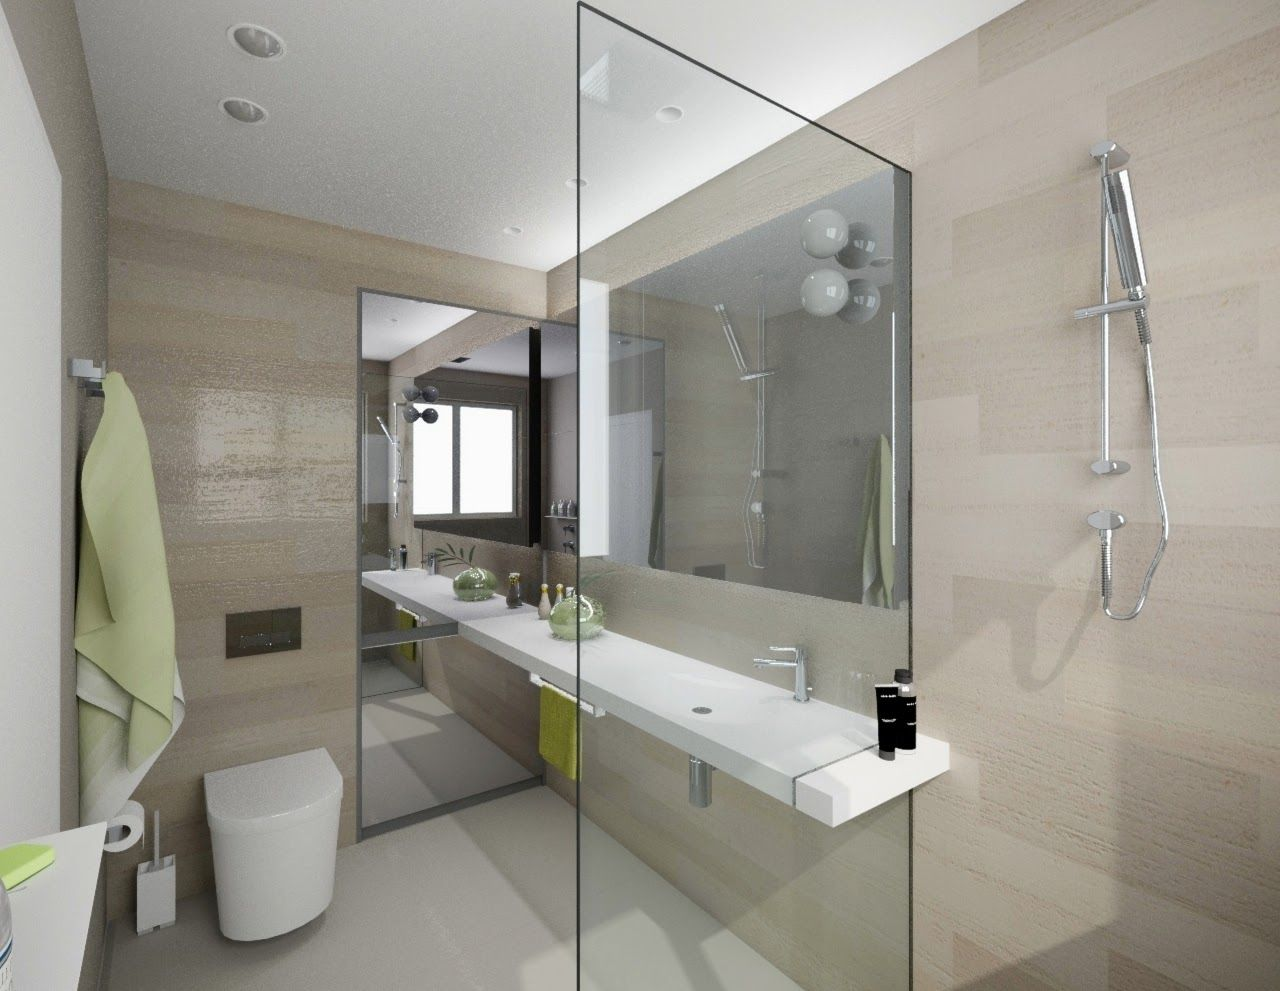 Houzz Küche Altbau 2016 Interior Design Bathroom Floor Trends Google Search